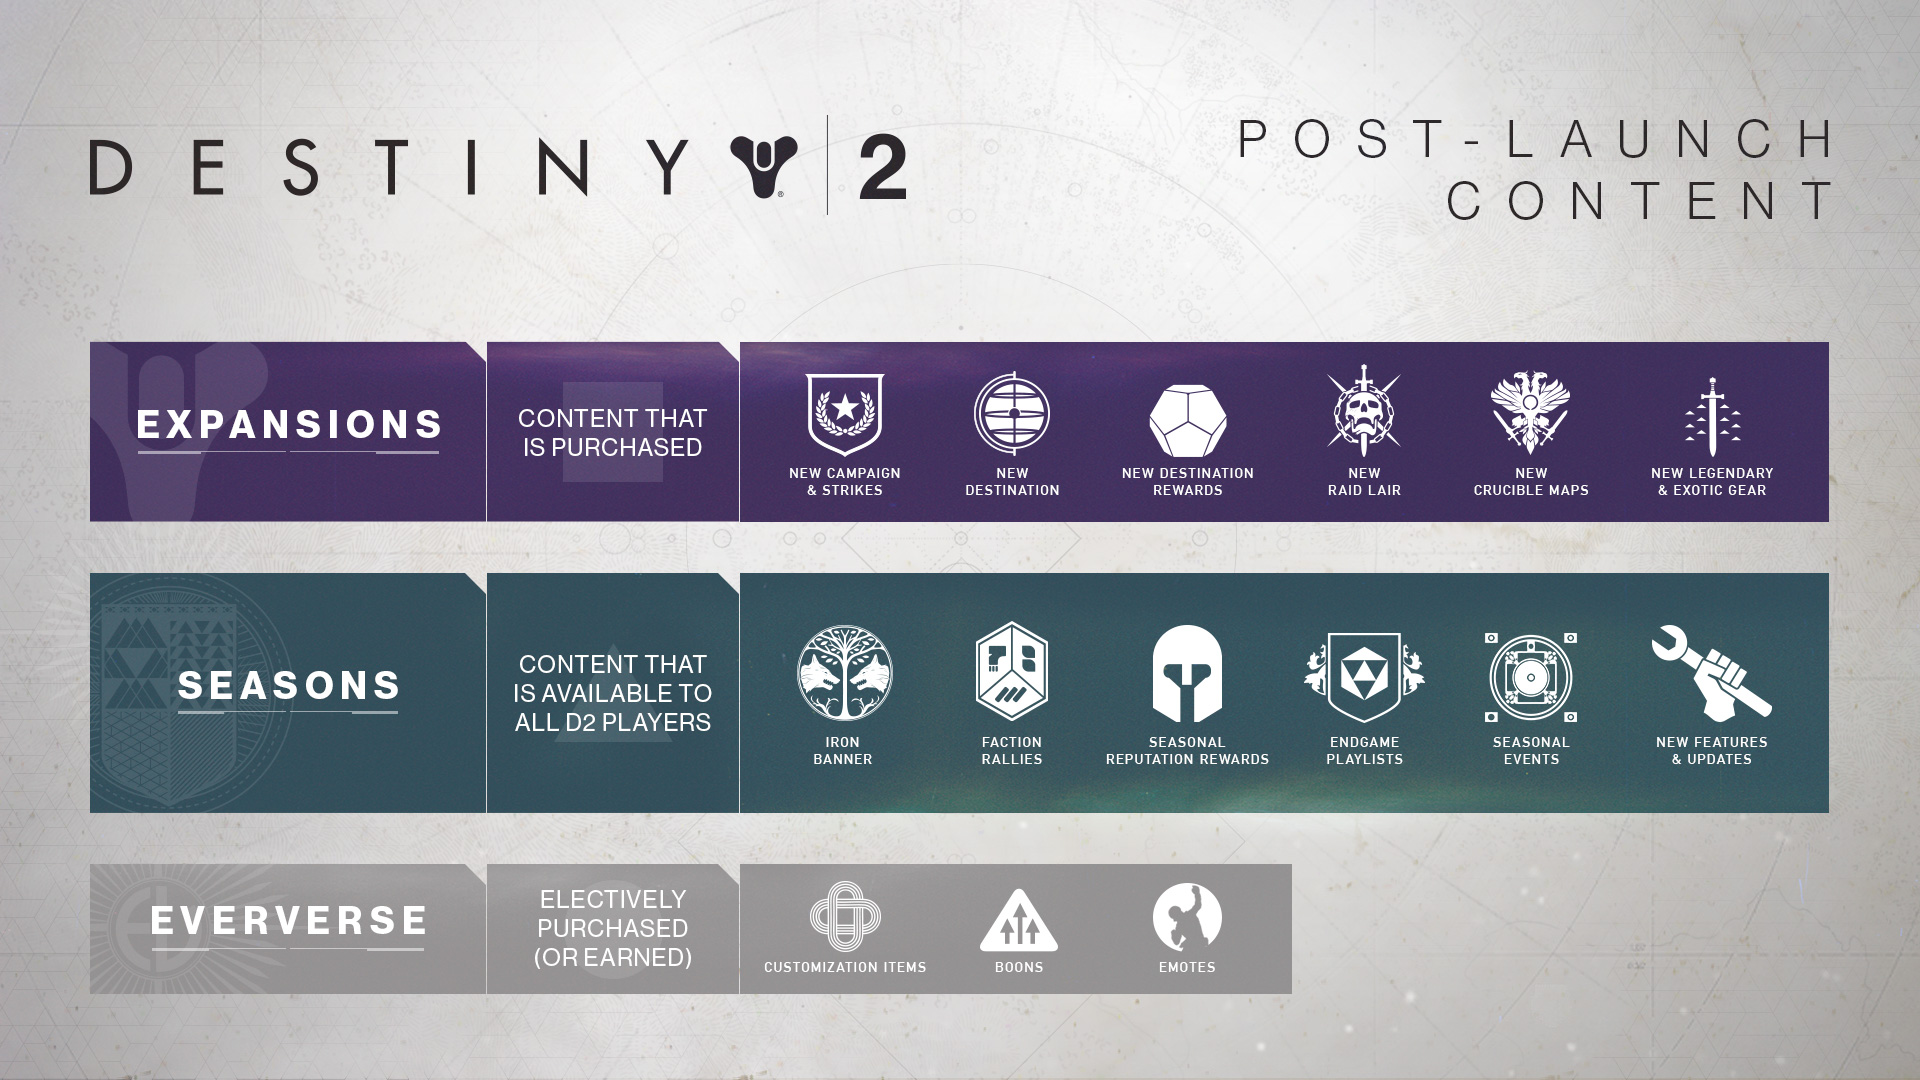 Bungie 2018 Destiny 2 Roadmap Tones Down Eververse, Bring Back 6v6 Multiplayer